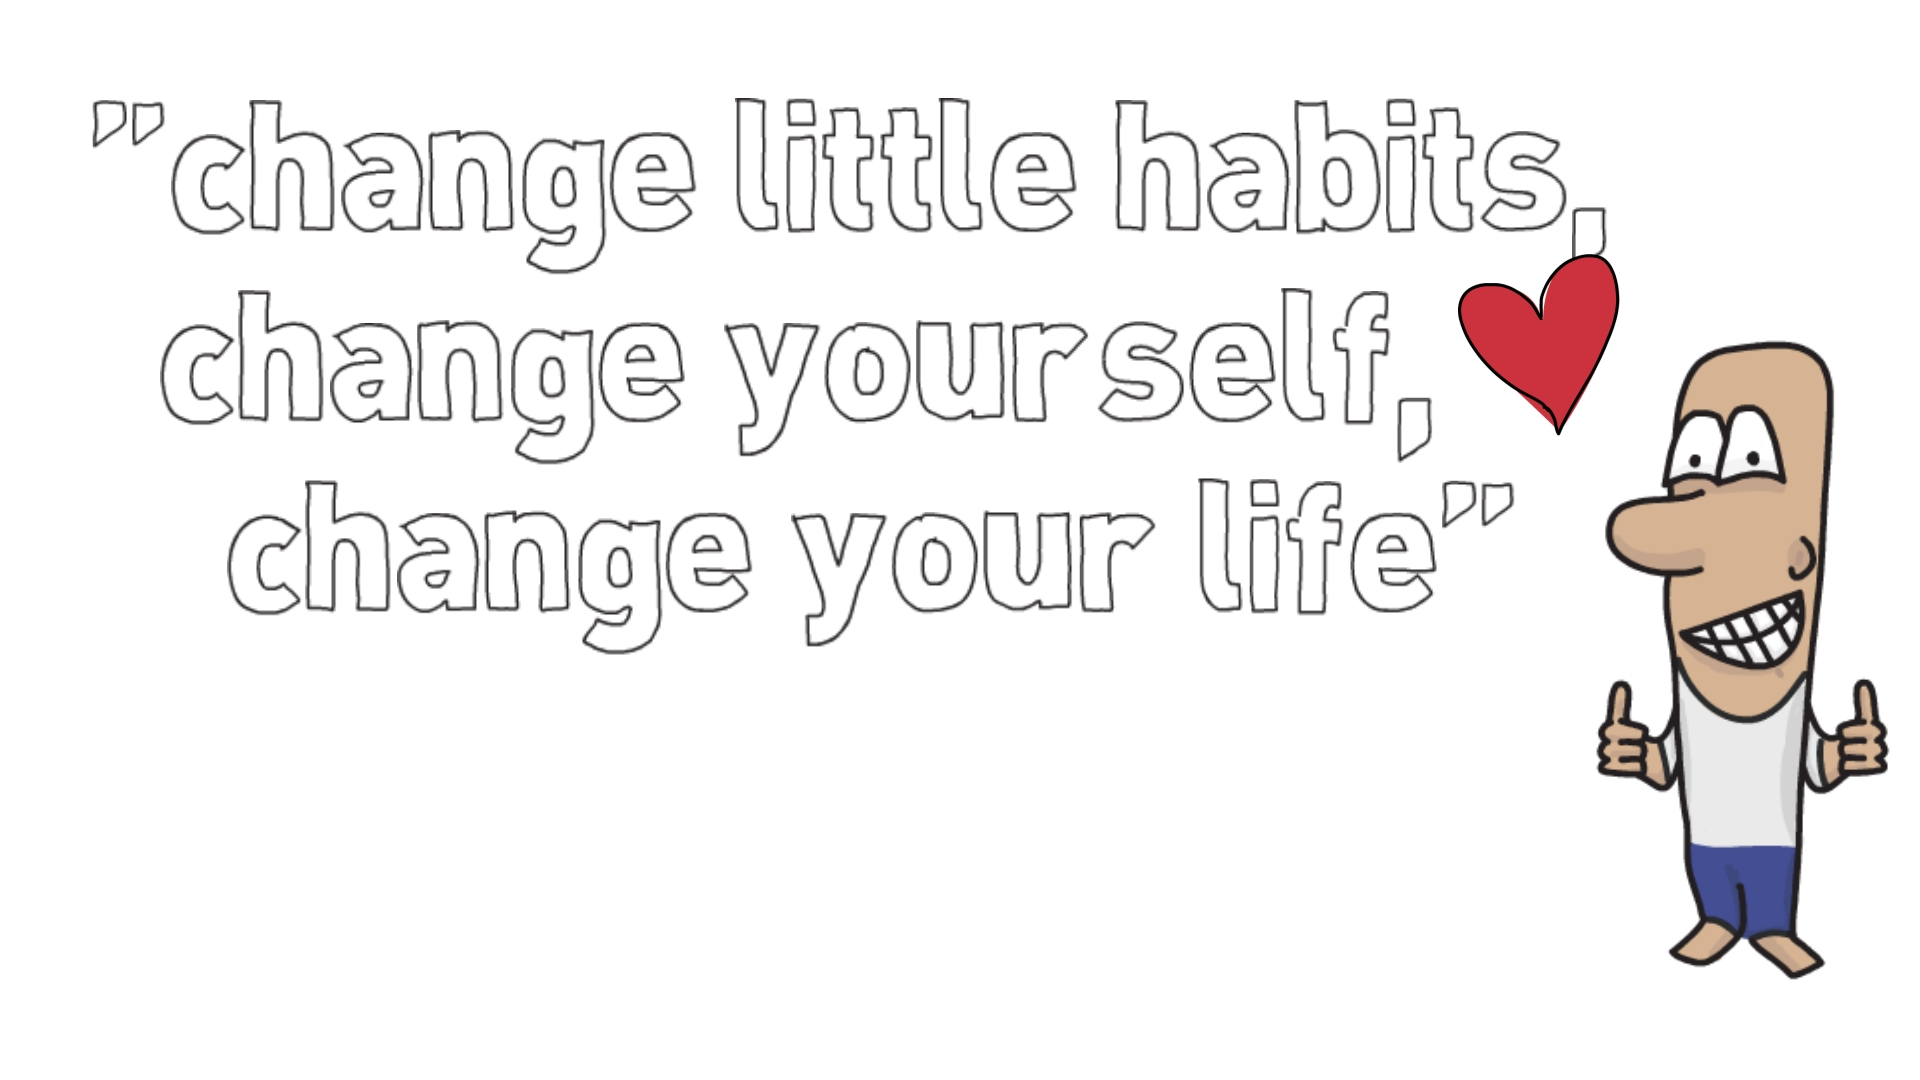 Changing Habits